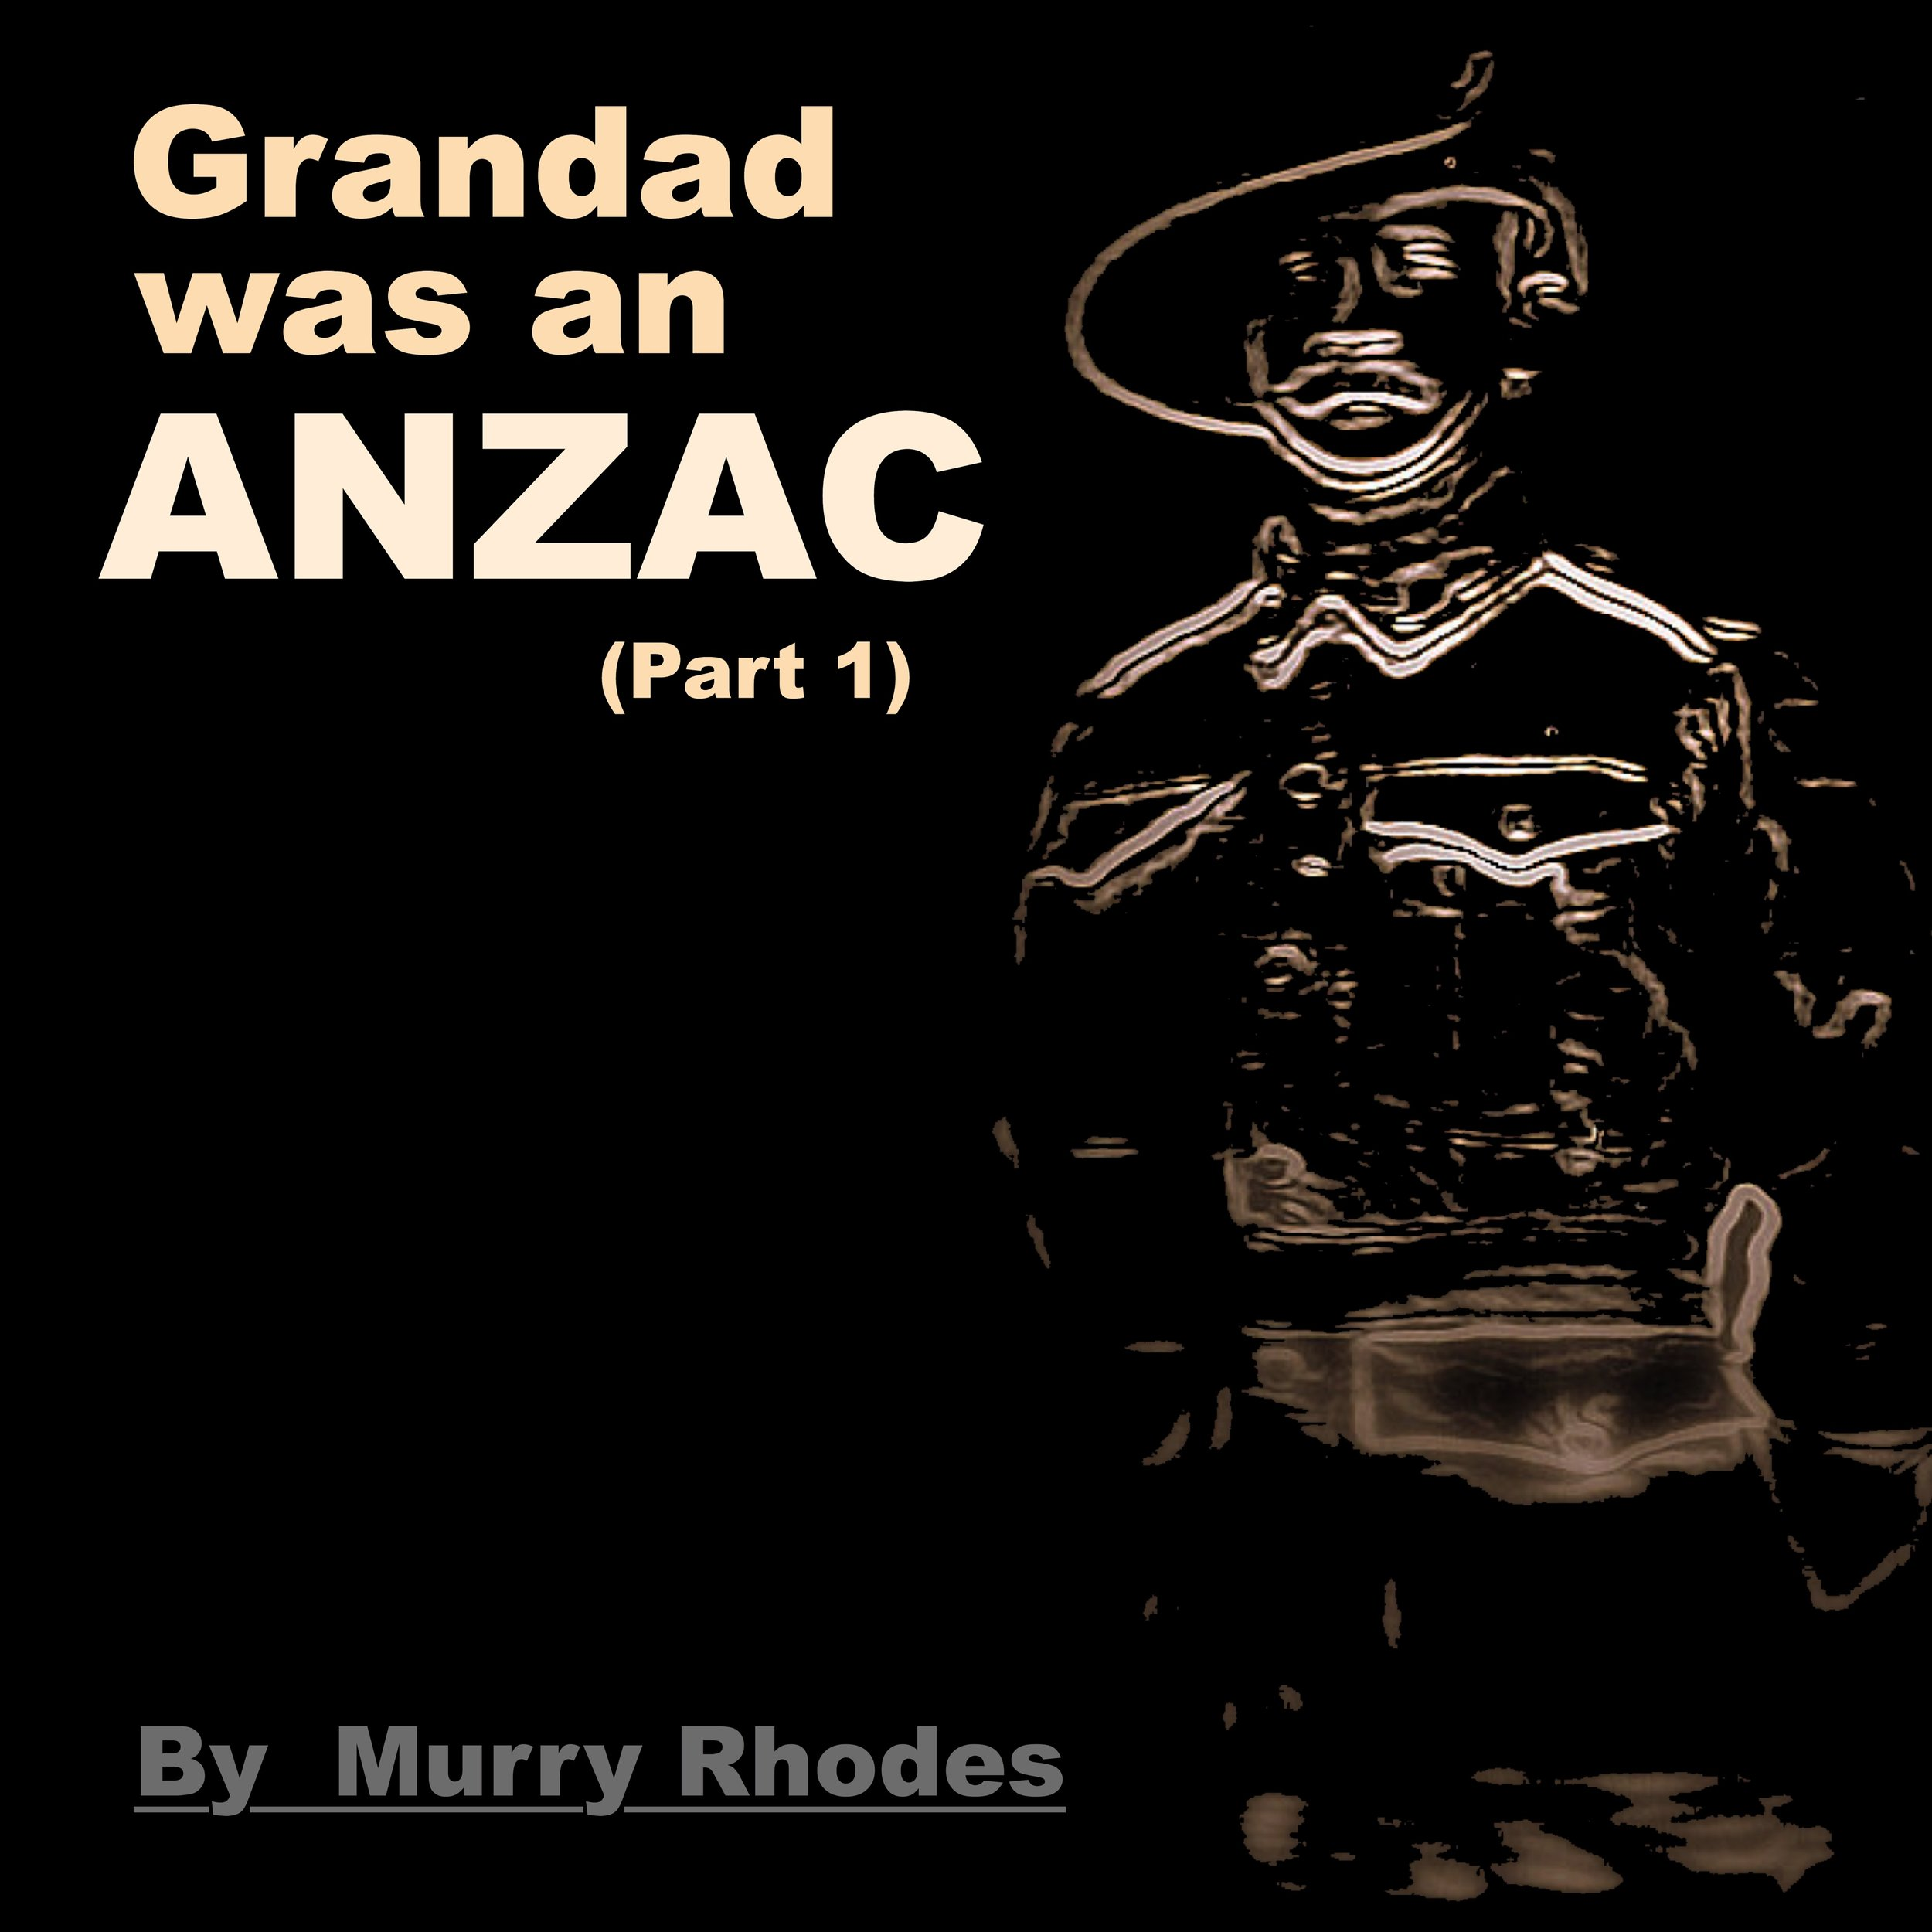 Grandad was an ANZAC SINGLE COVER FRONT 2019.jpg